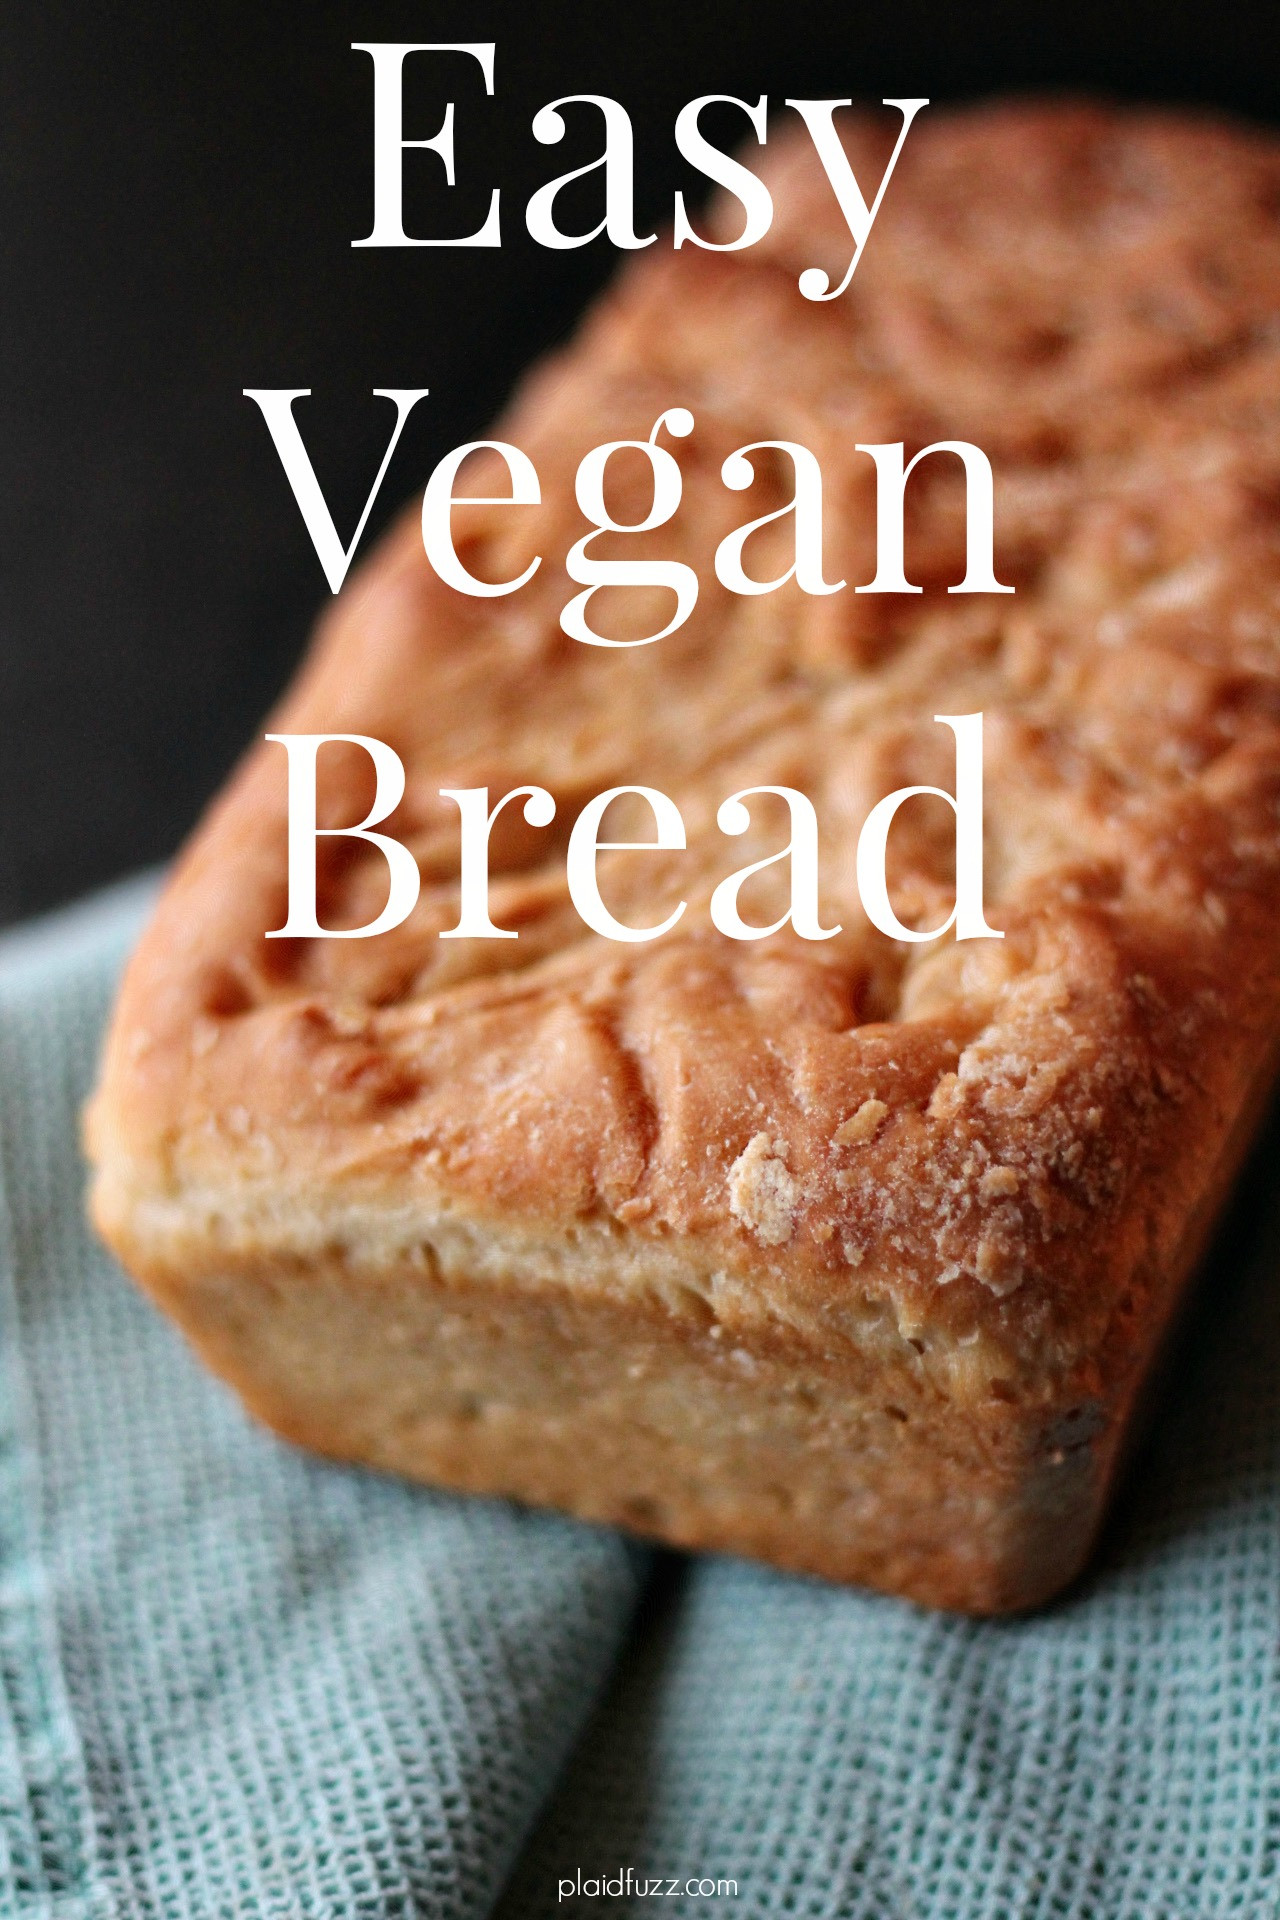 Easy Vegan Bread  Easy vegan Bread The House of Plaidfuzz